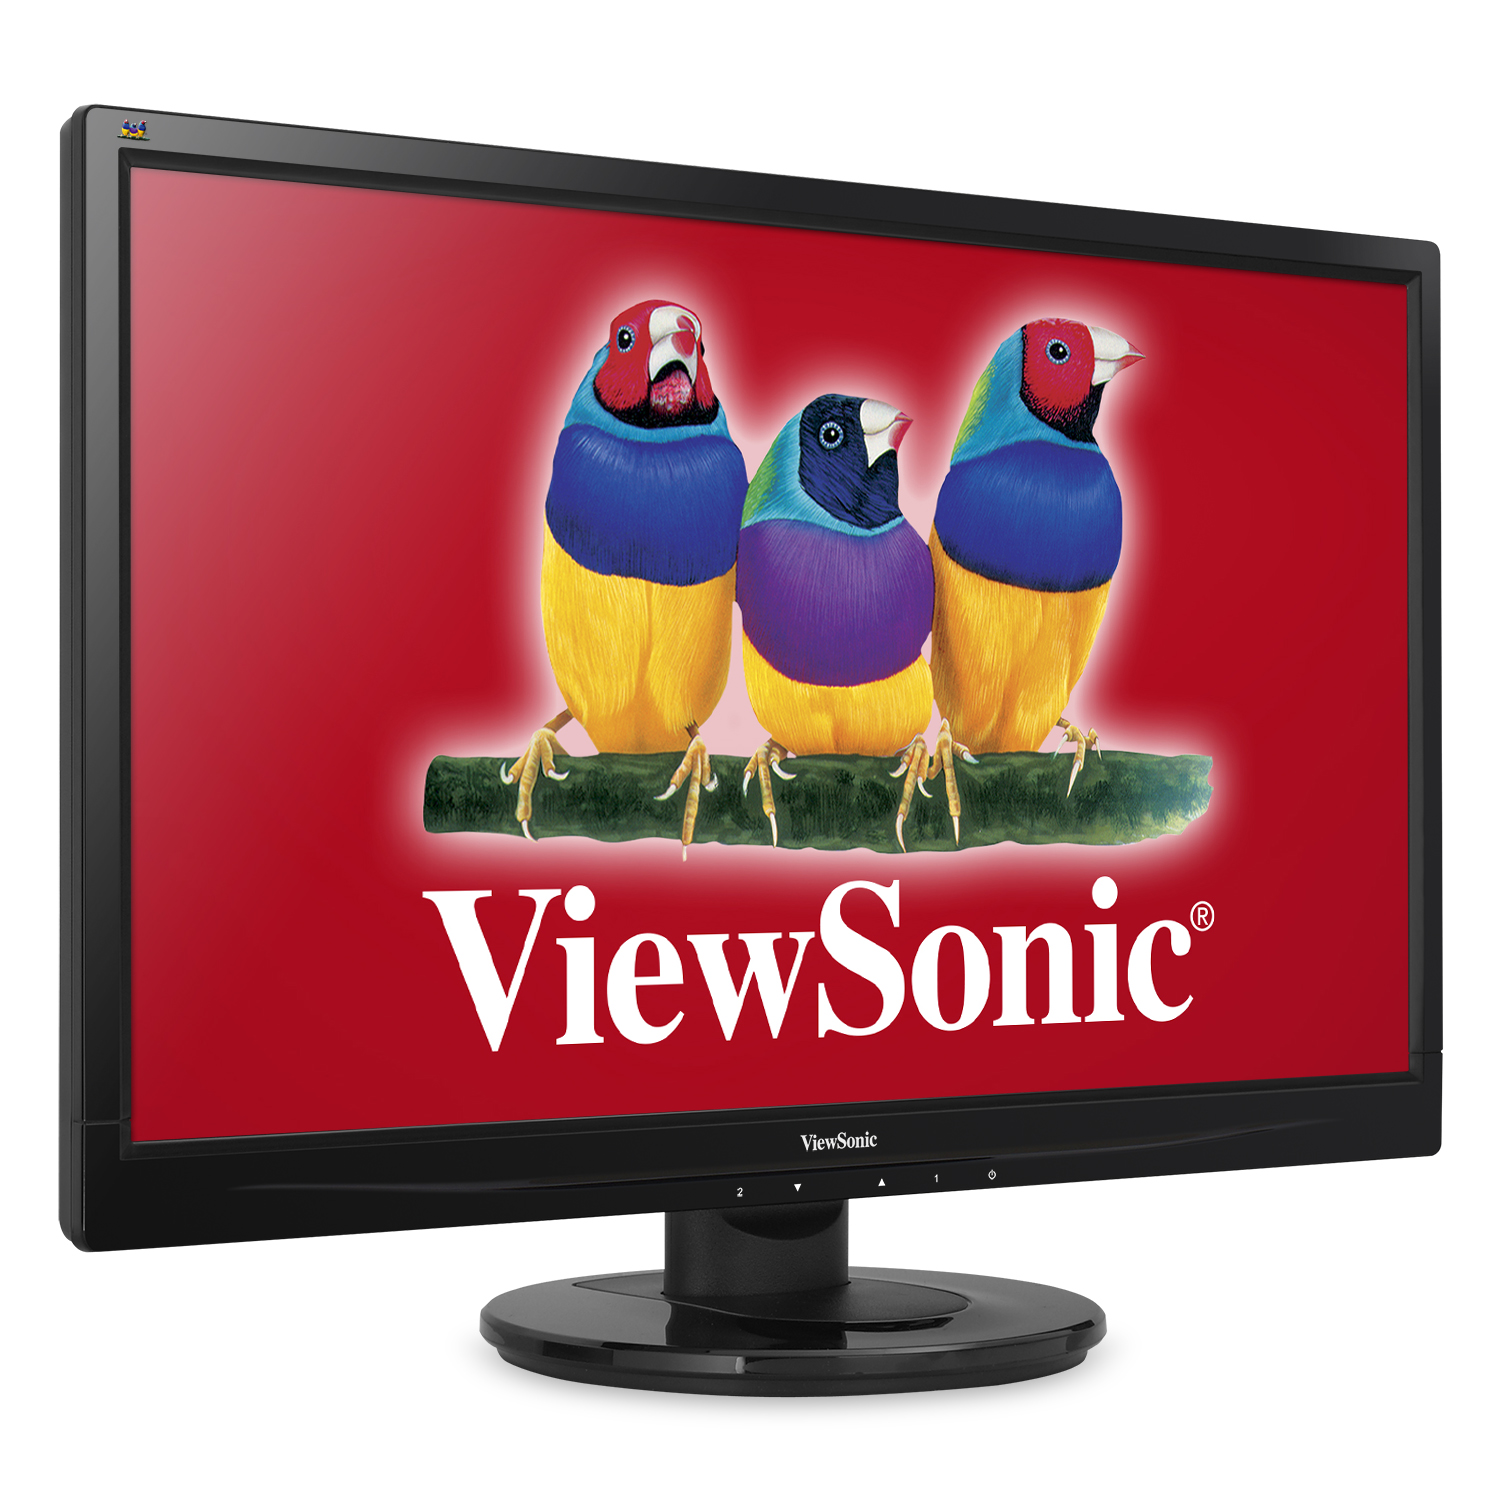 "Refurbished 27"" Viewsonic VA15457 DVI/VGA 1080p Widescreen LED LCD Monitor w/HDCP Support"